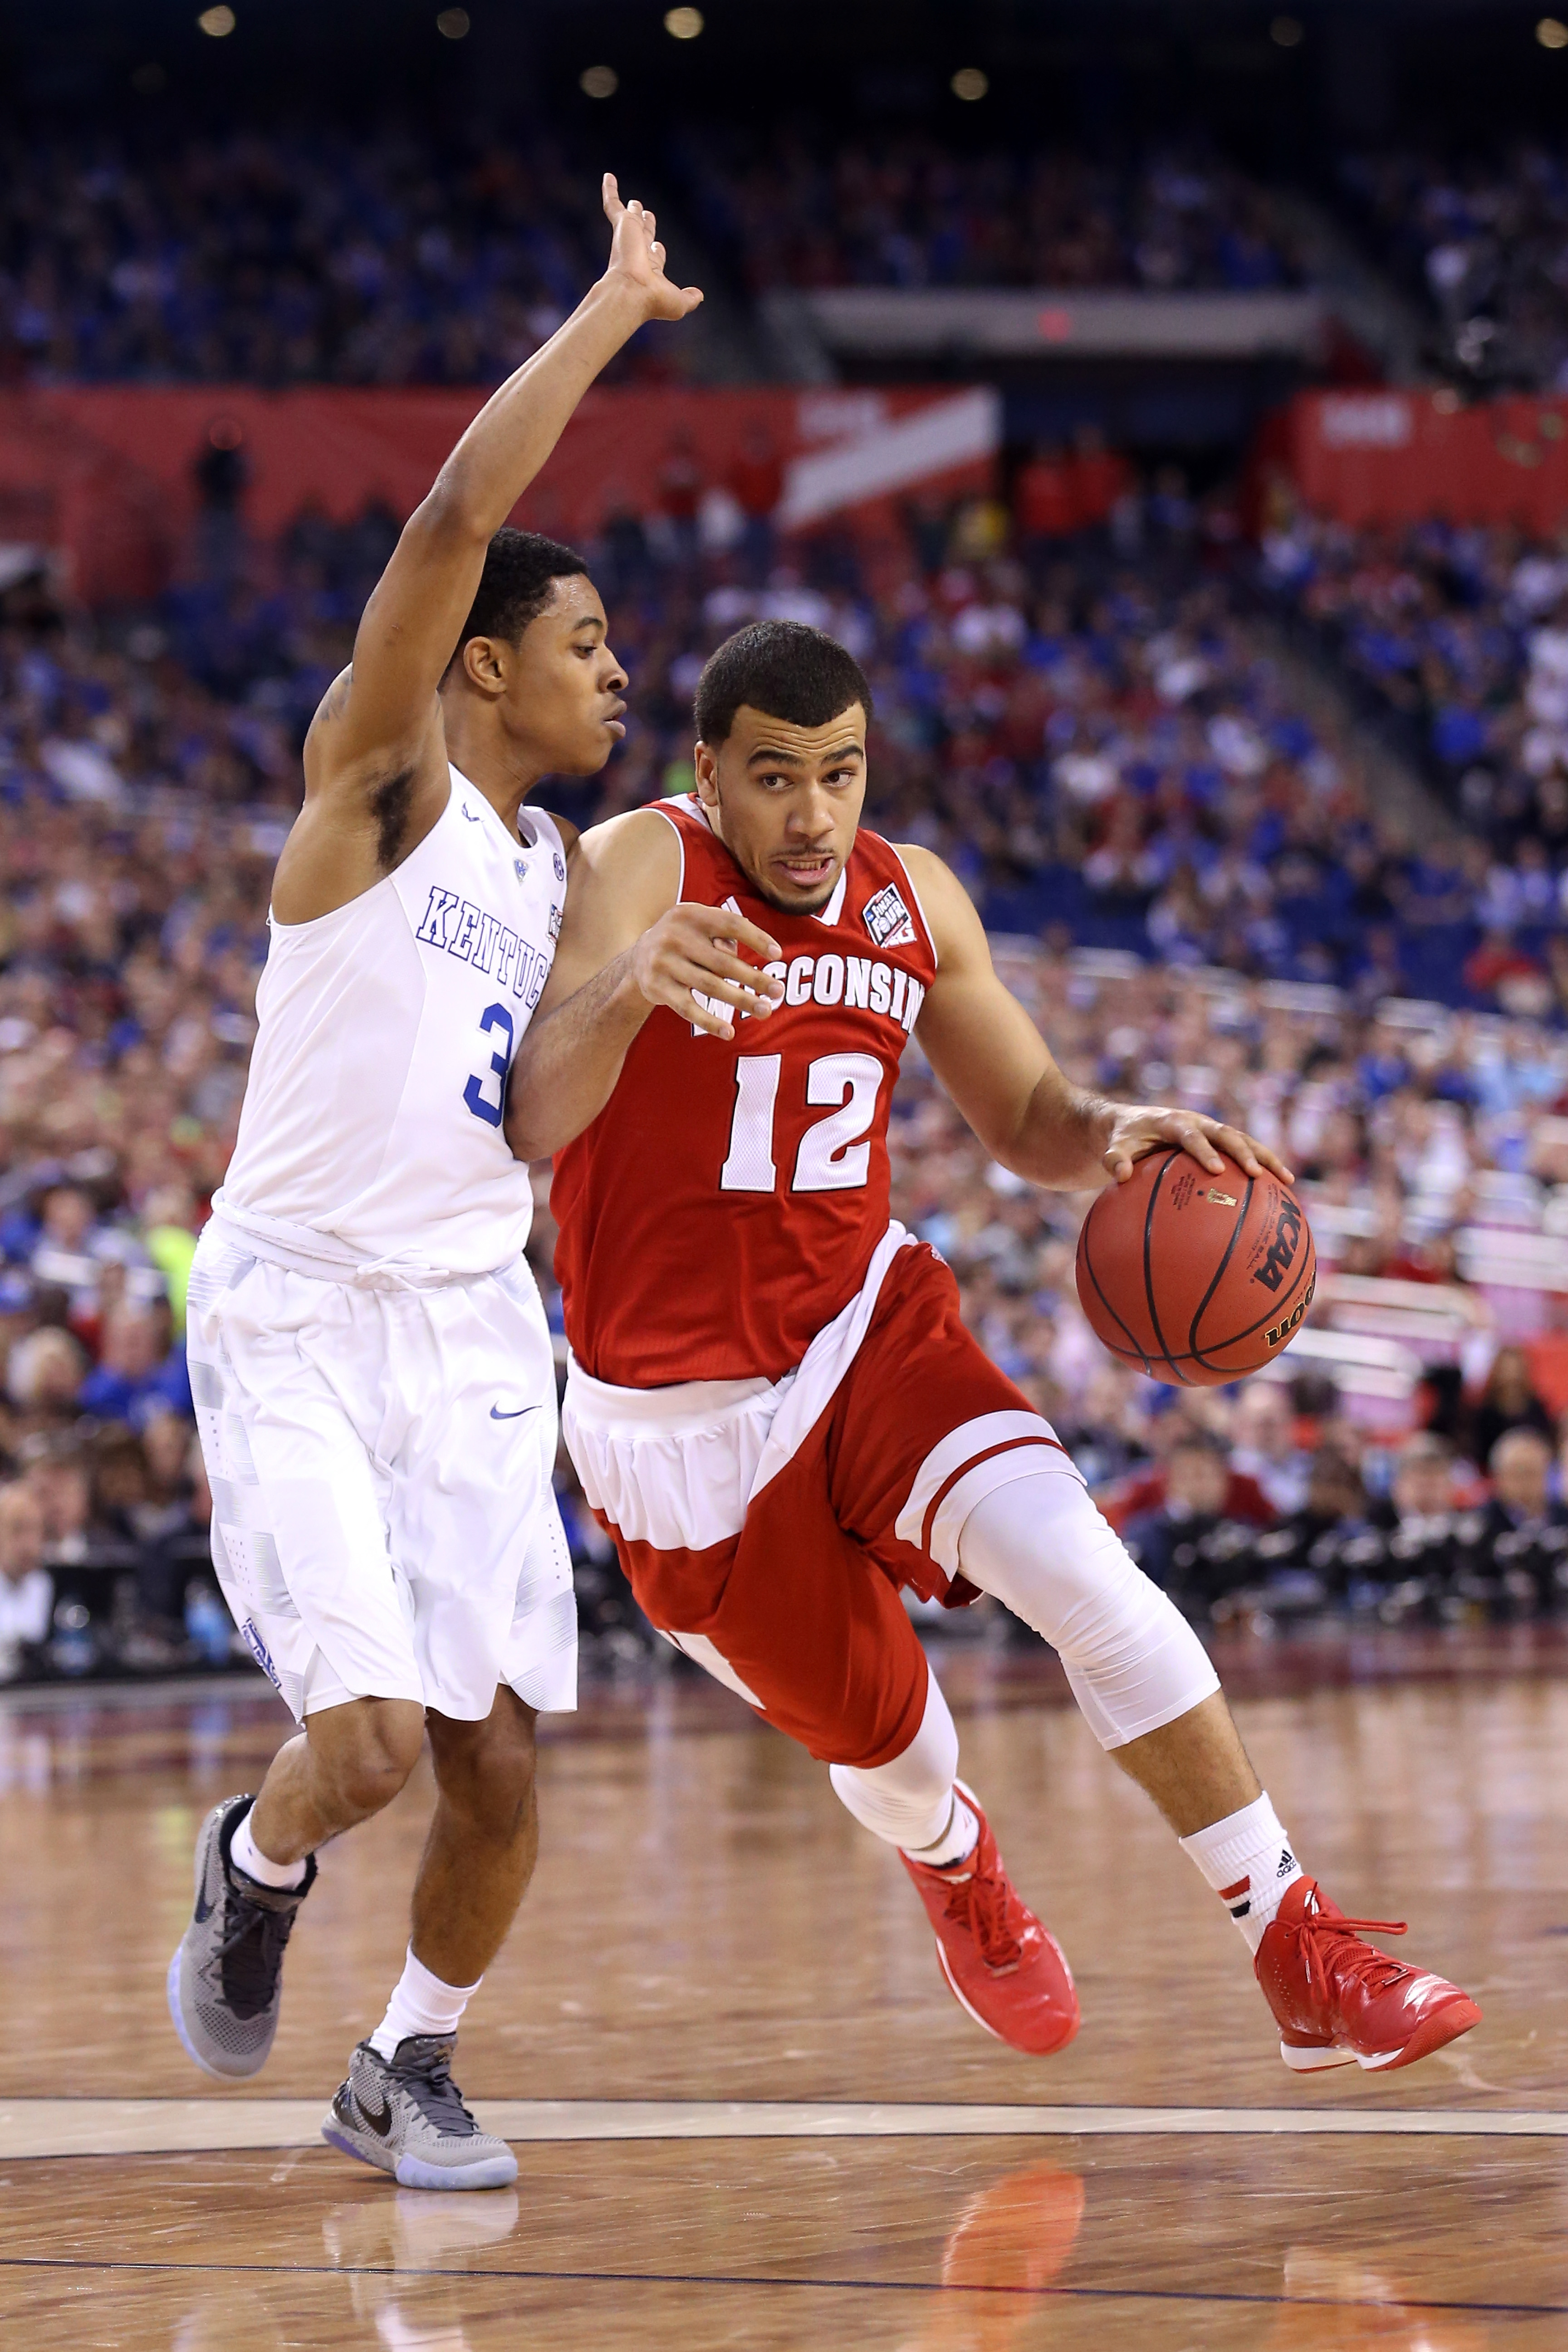 Traevon Jackson #12 of the Wisconsin Badgers handles the ball against Tyler Ulis #3 of the Kentucky Wildcats in the second half during the NCAA Men's Final Four Semifinal at Lucas Oil Stadium on April 4, 2015 in Indianapolis, Indiana.